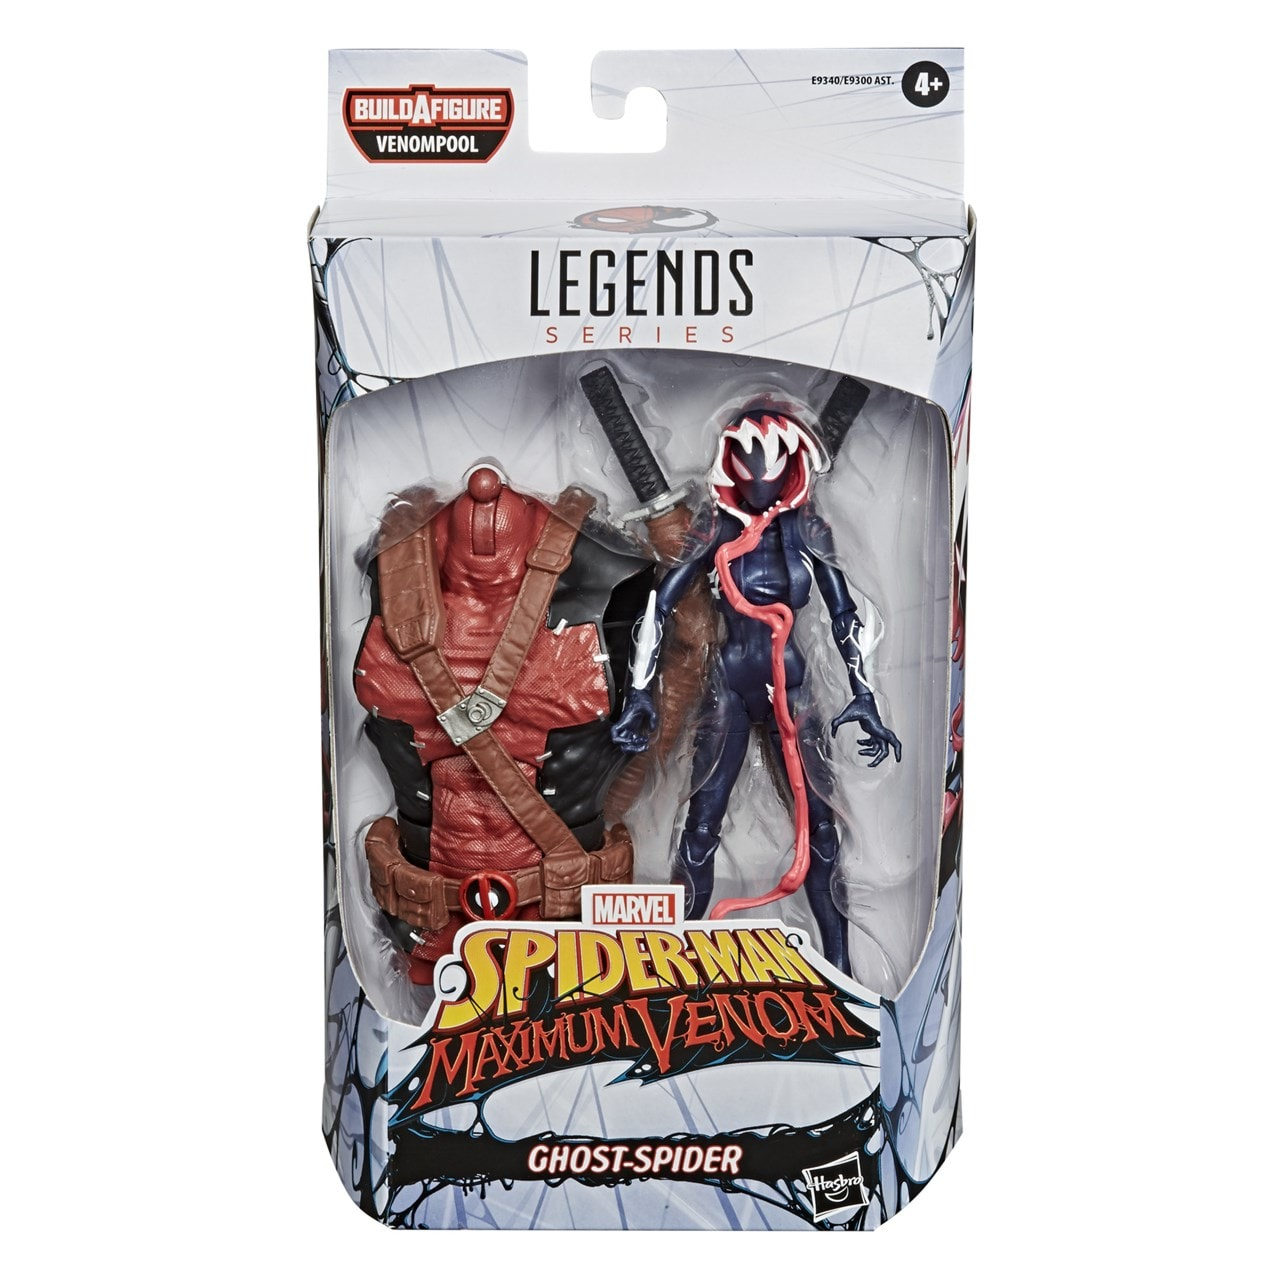 Marvel Legends: Ghost Spider (Venom) Action Figure - 4